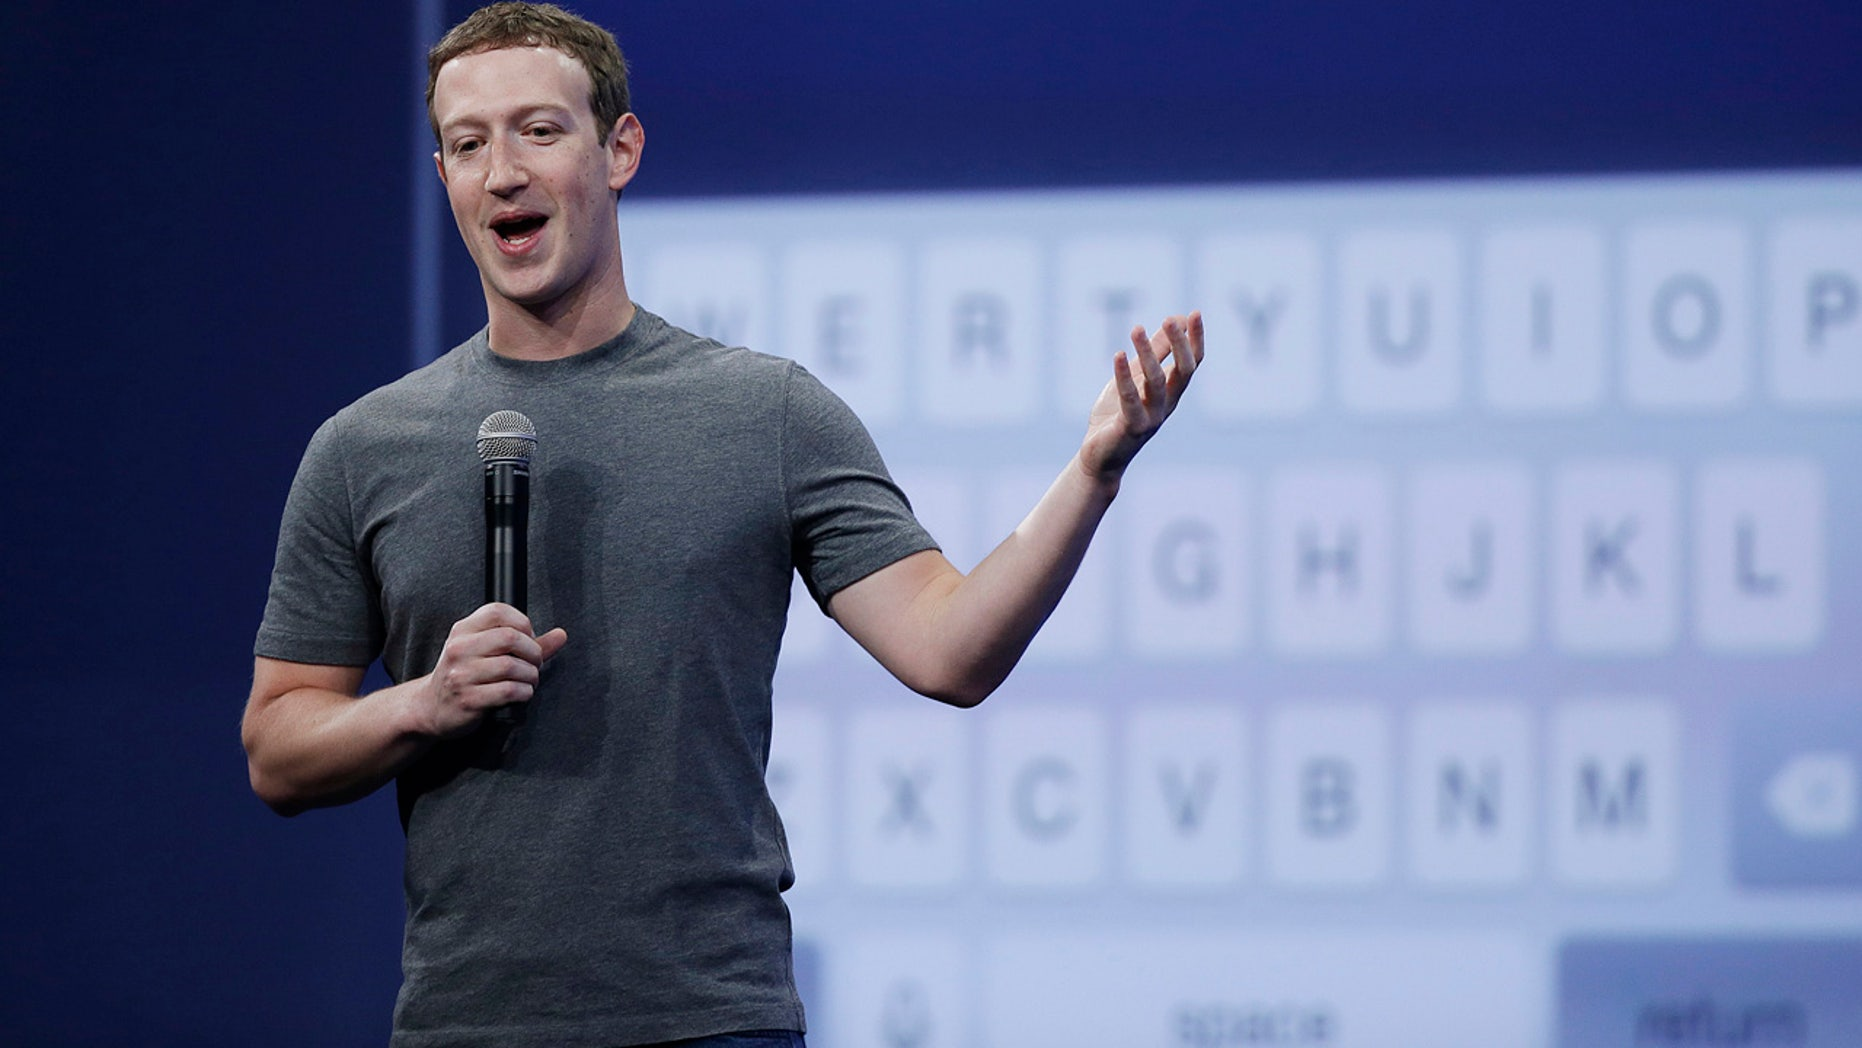 FILE - In this March 25, 2015, file photo, Mark Zuckerberg talks about the Messenger app during the Facebook F8 Developer Conference in San Francisco. (AP Photo/Eric Risberg, File)